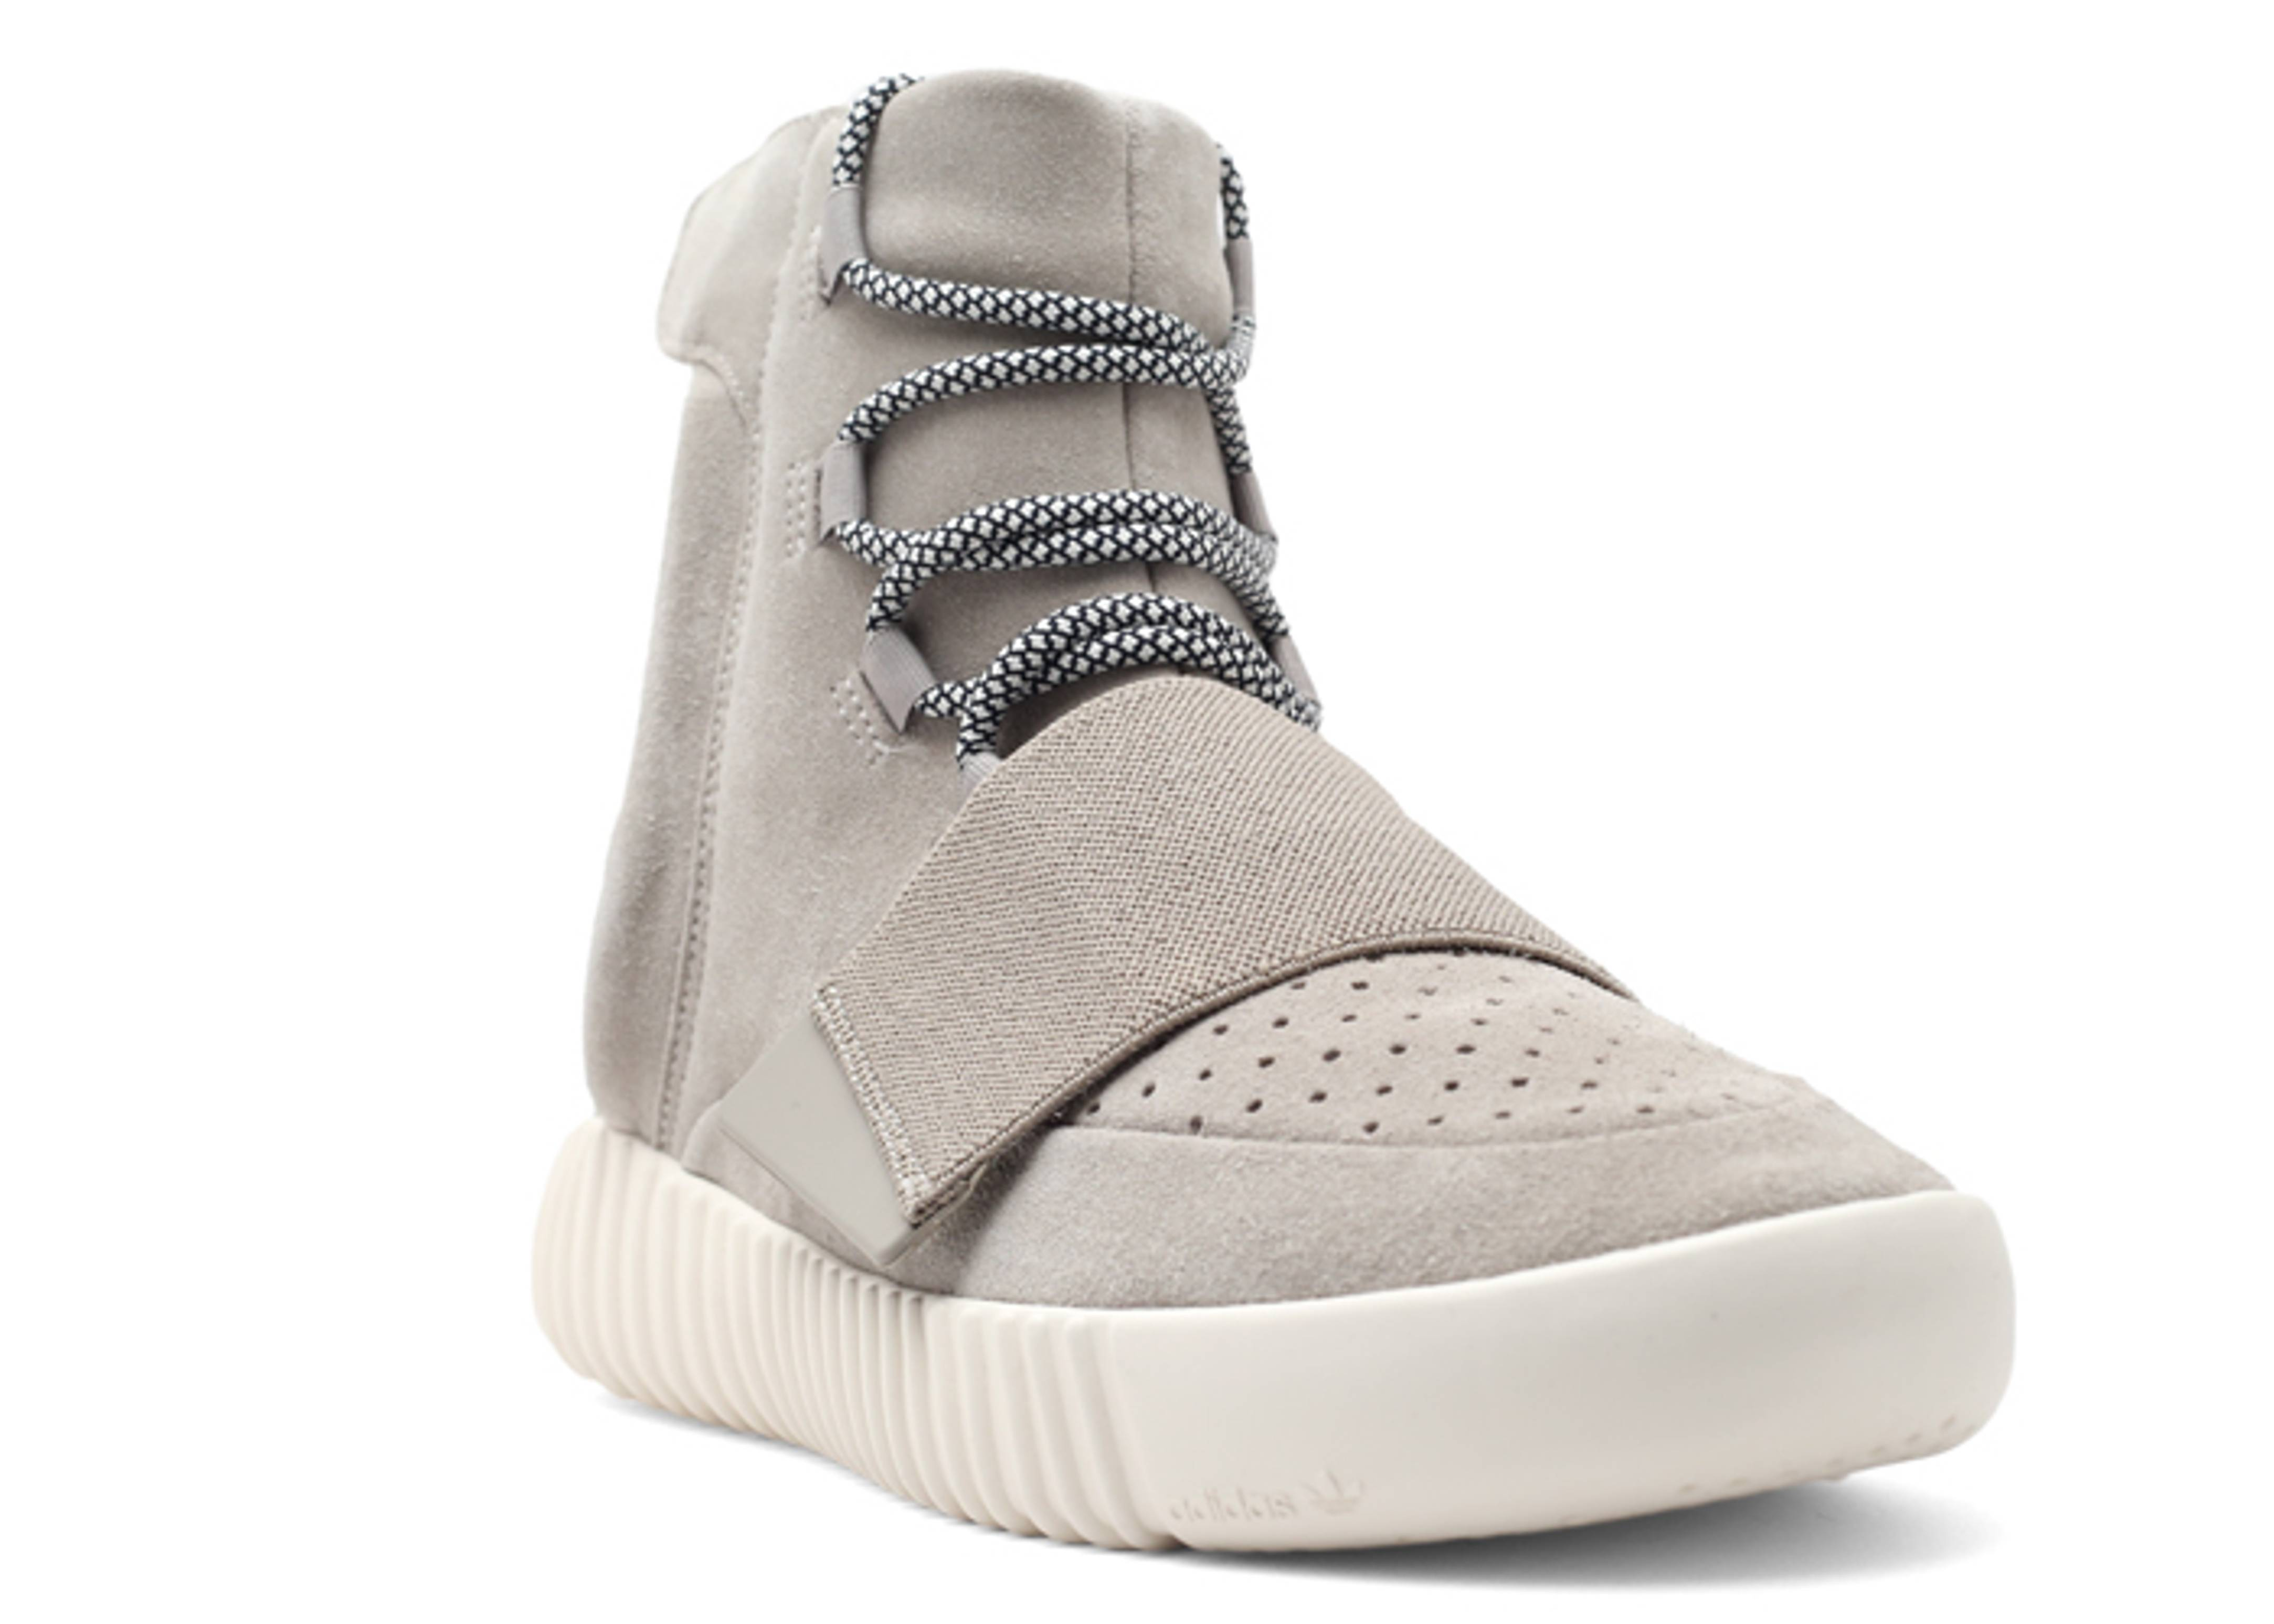 Yeezy 750 Boost From Adidas